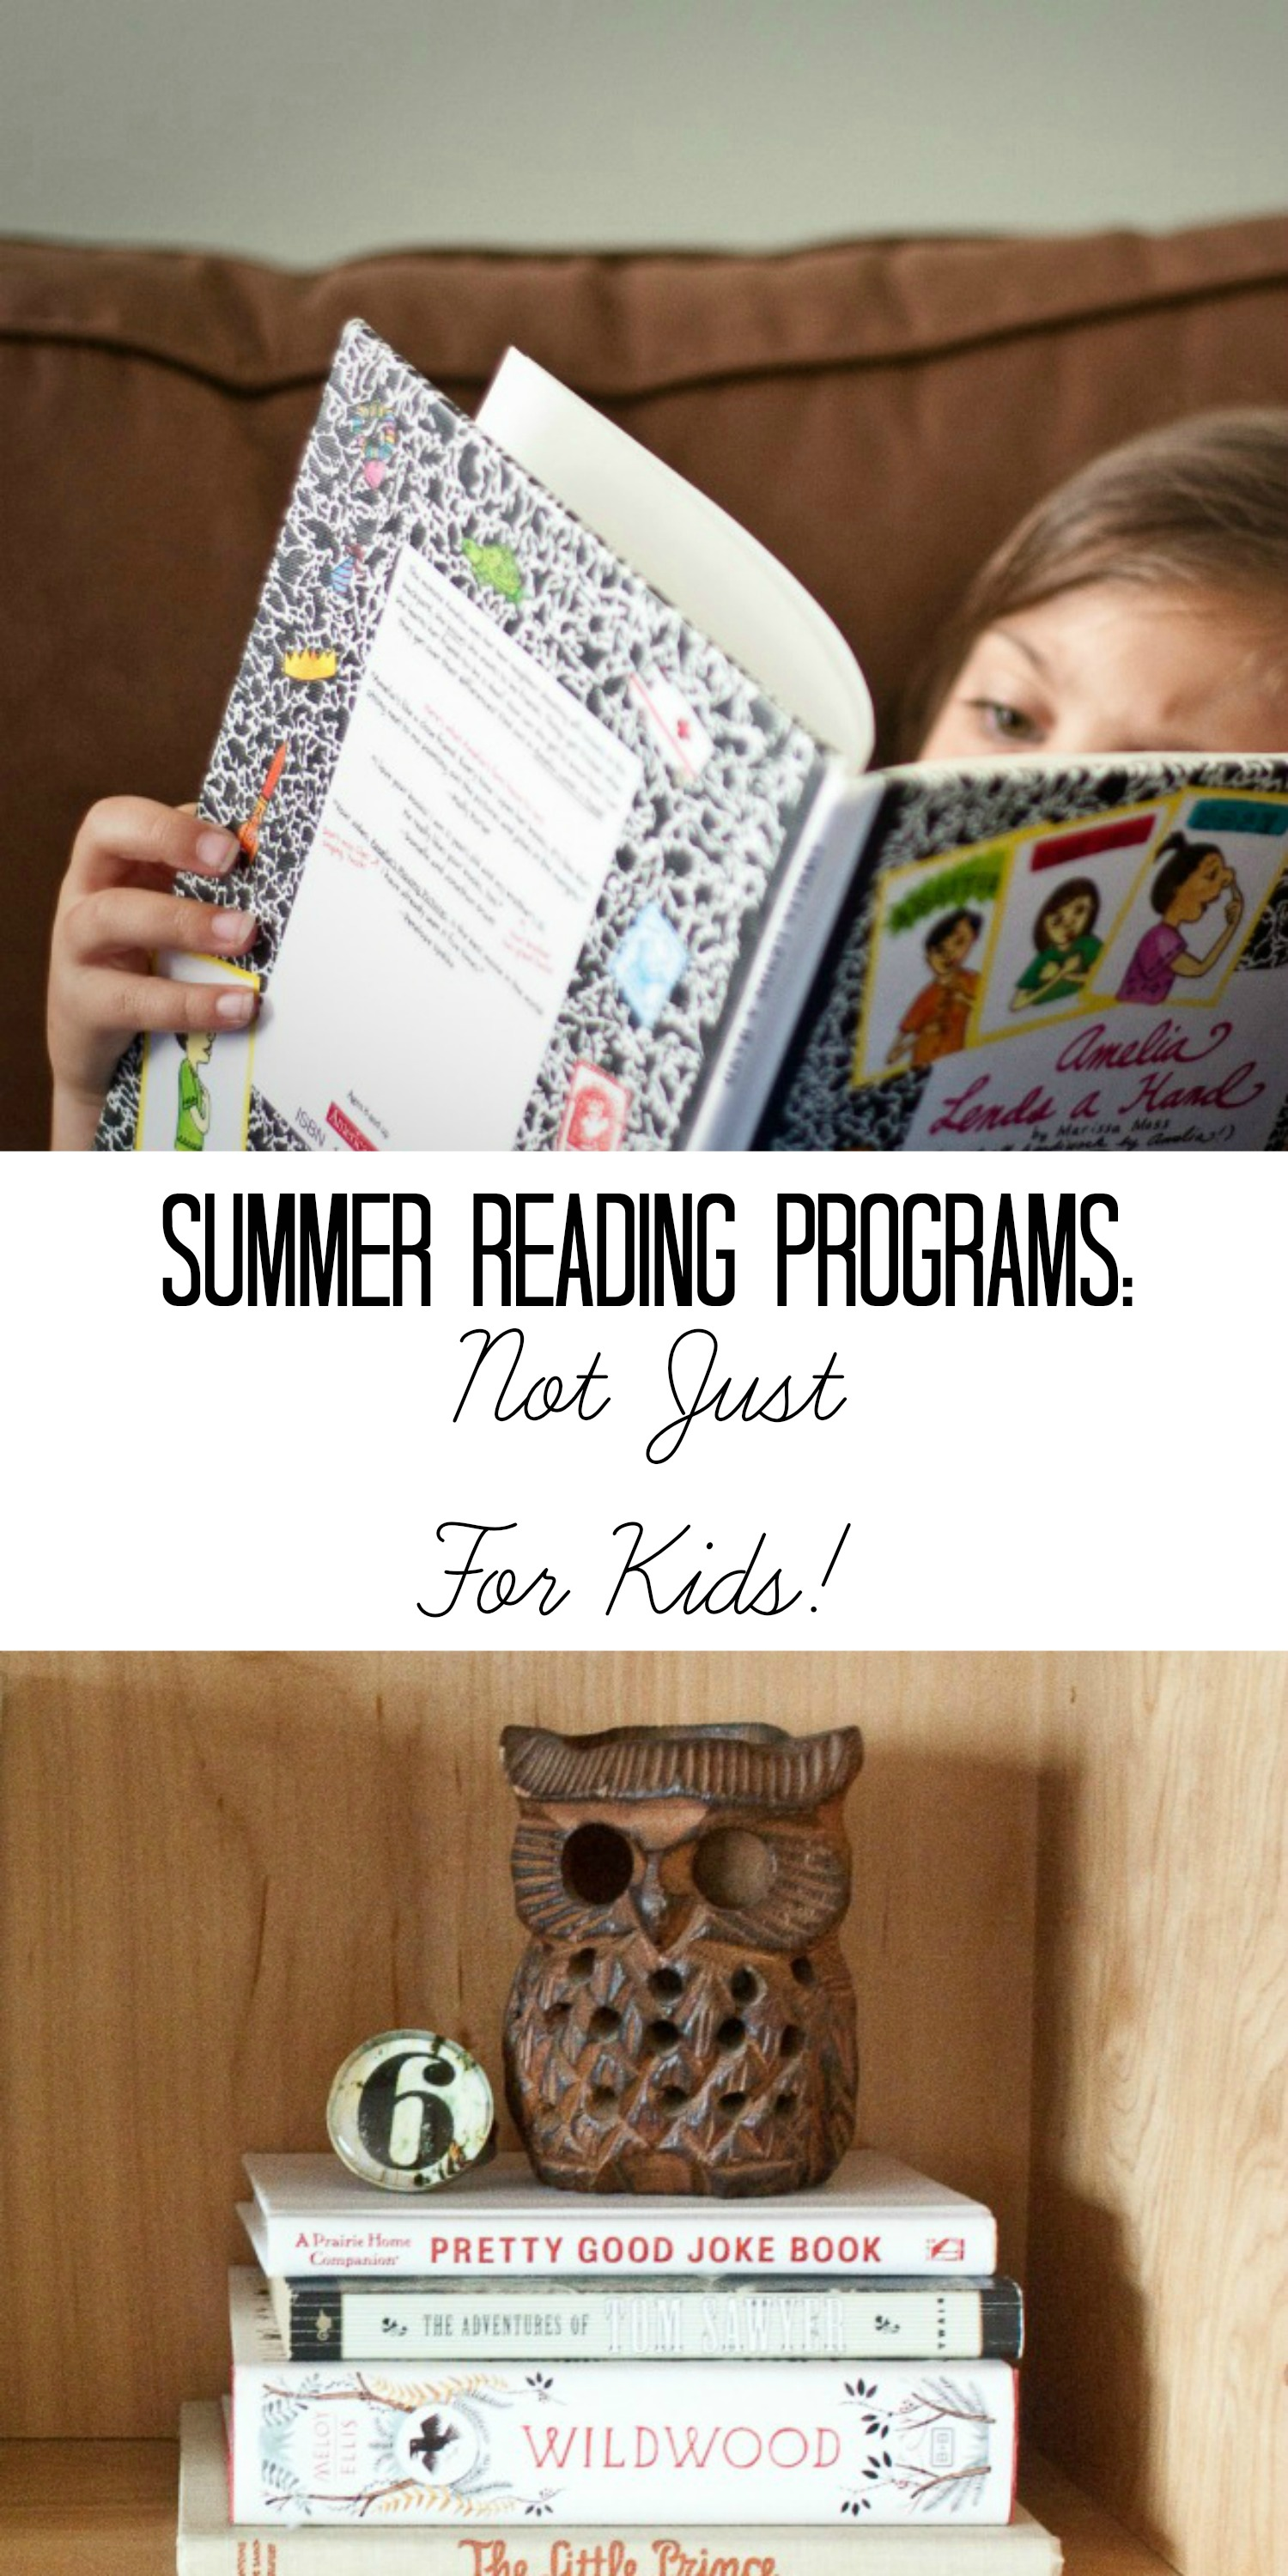 #4 On The Six-Tastic Summer 23 x 23 List: Summer Reading Program